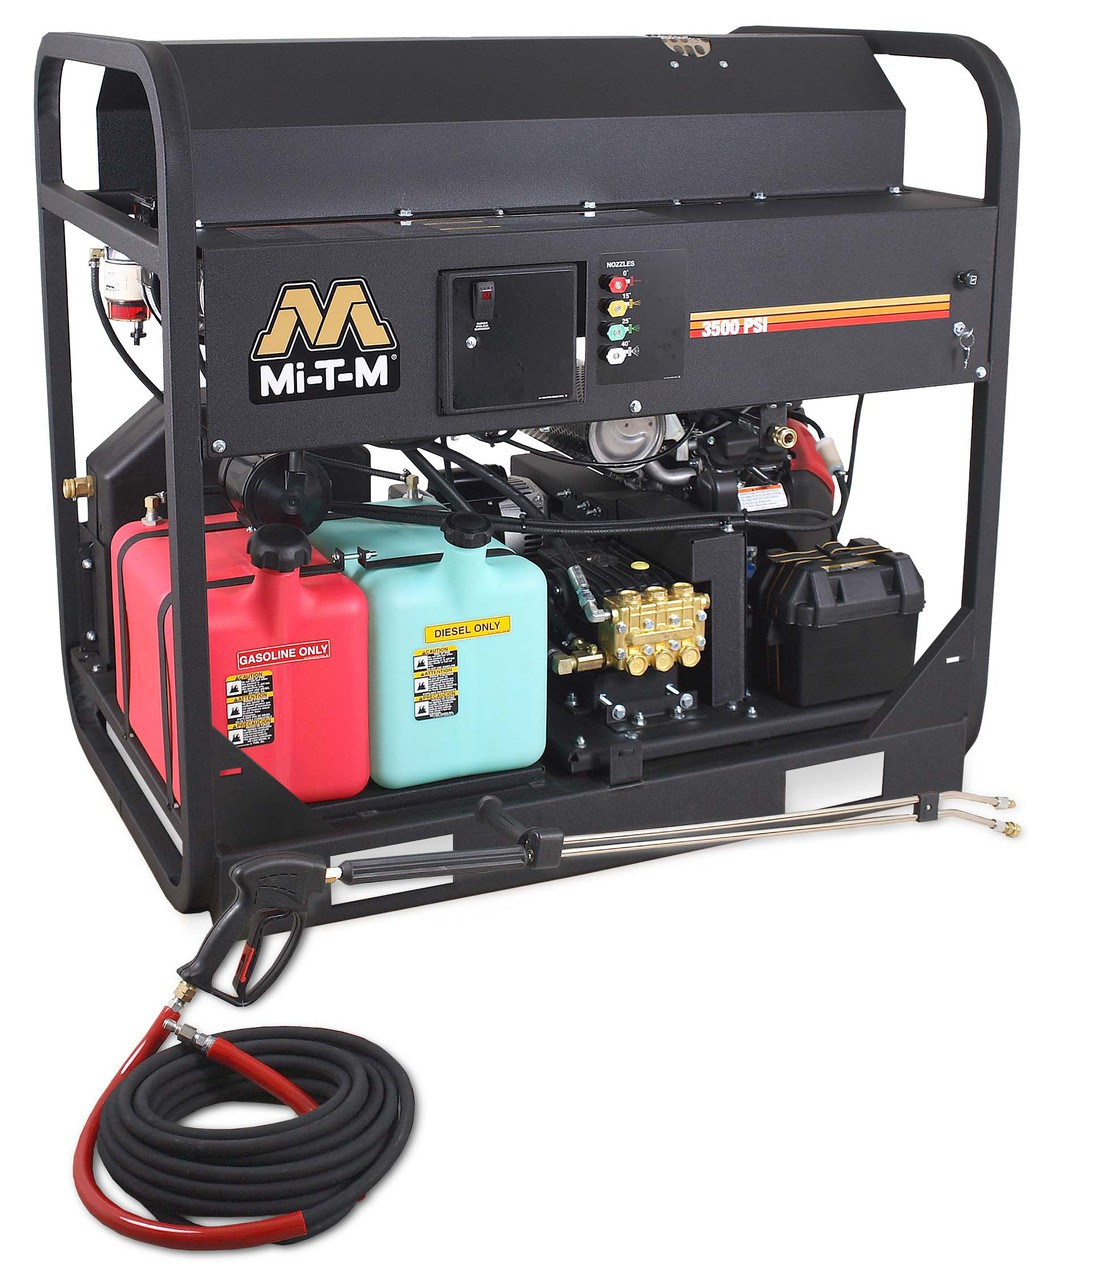 small resolution of mi t m wiring diagram wiring library mi t m hs gas hot water pressure washer 3500